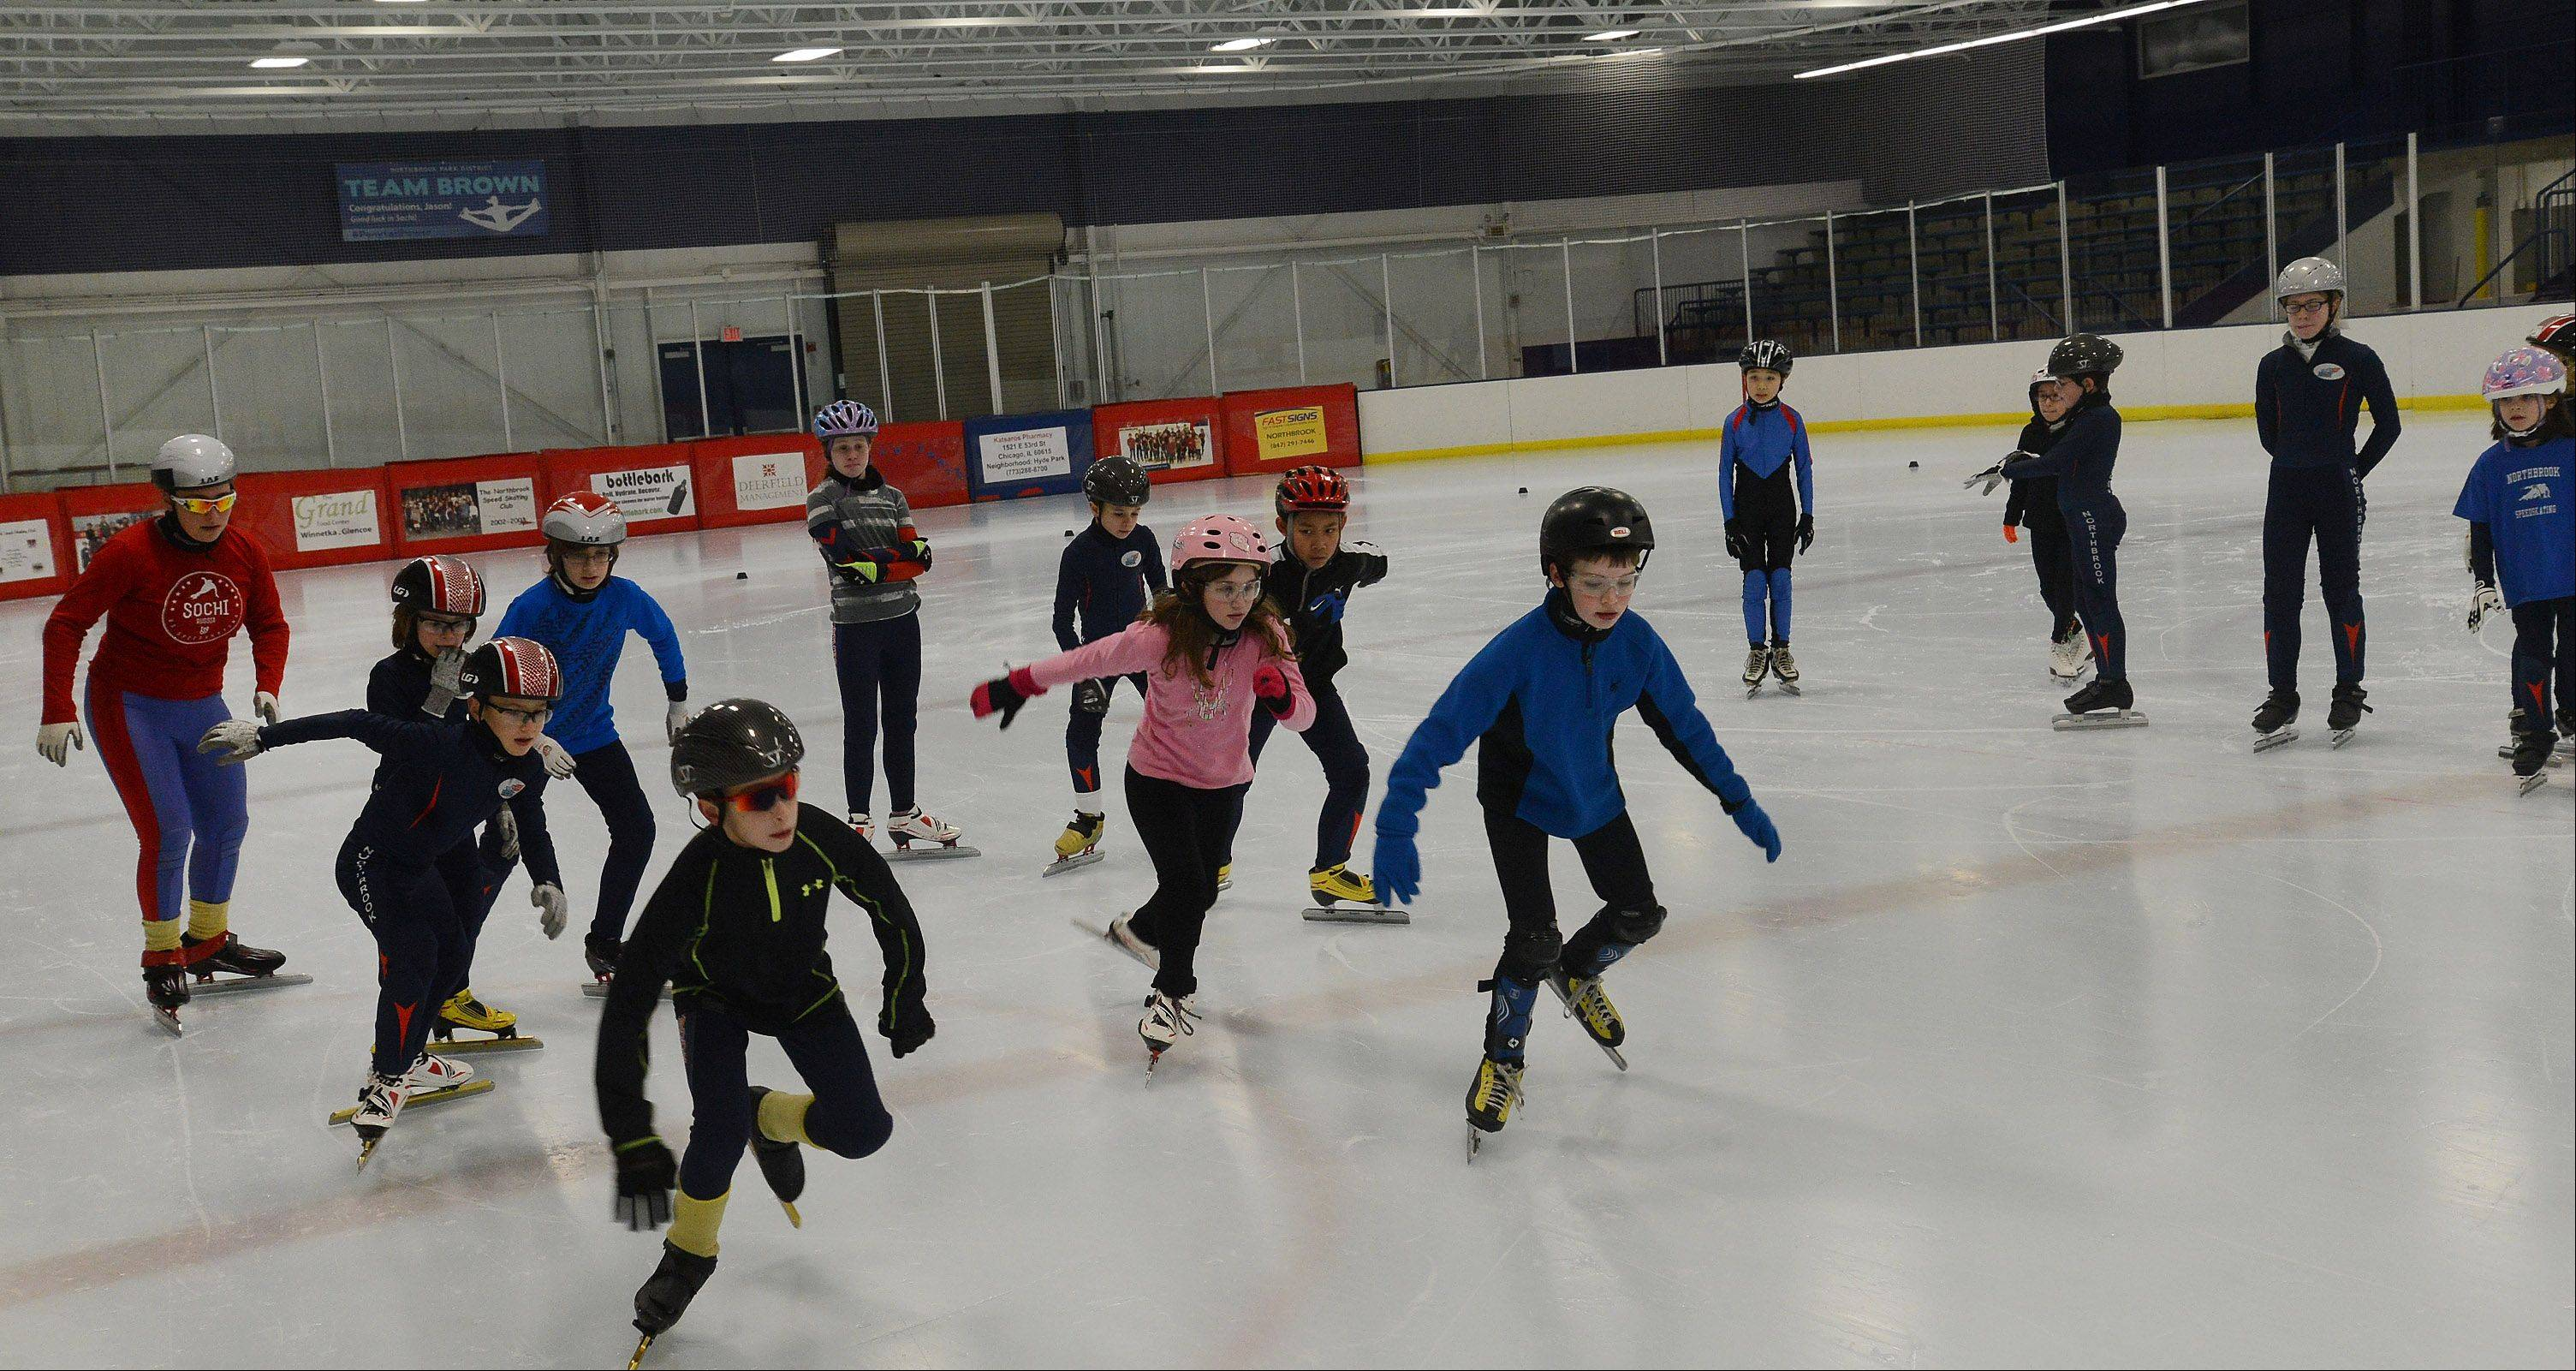 Members of the Northbrook Speed Skating Club take to the ice during one of its practices. The club's alumni include 19 Olympians, who won a combined 12 medals.